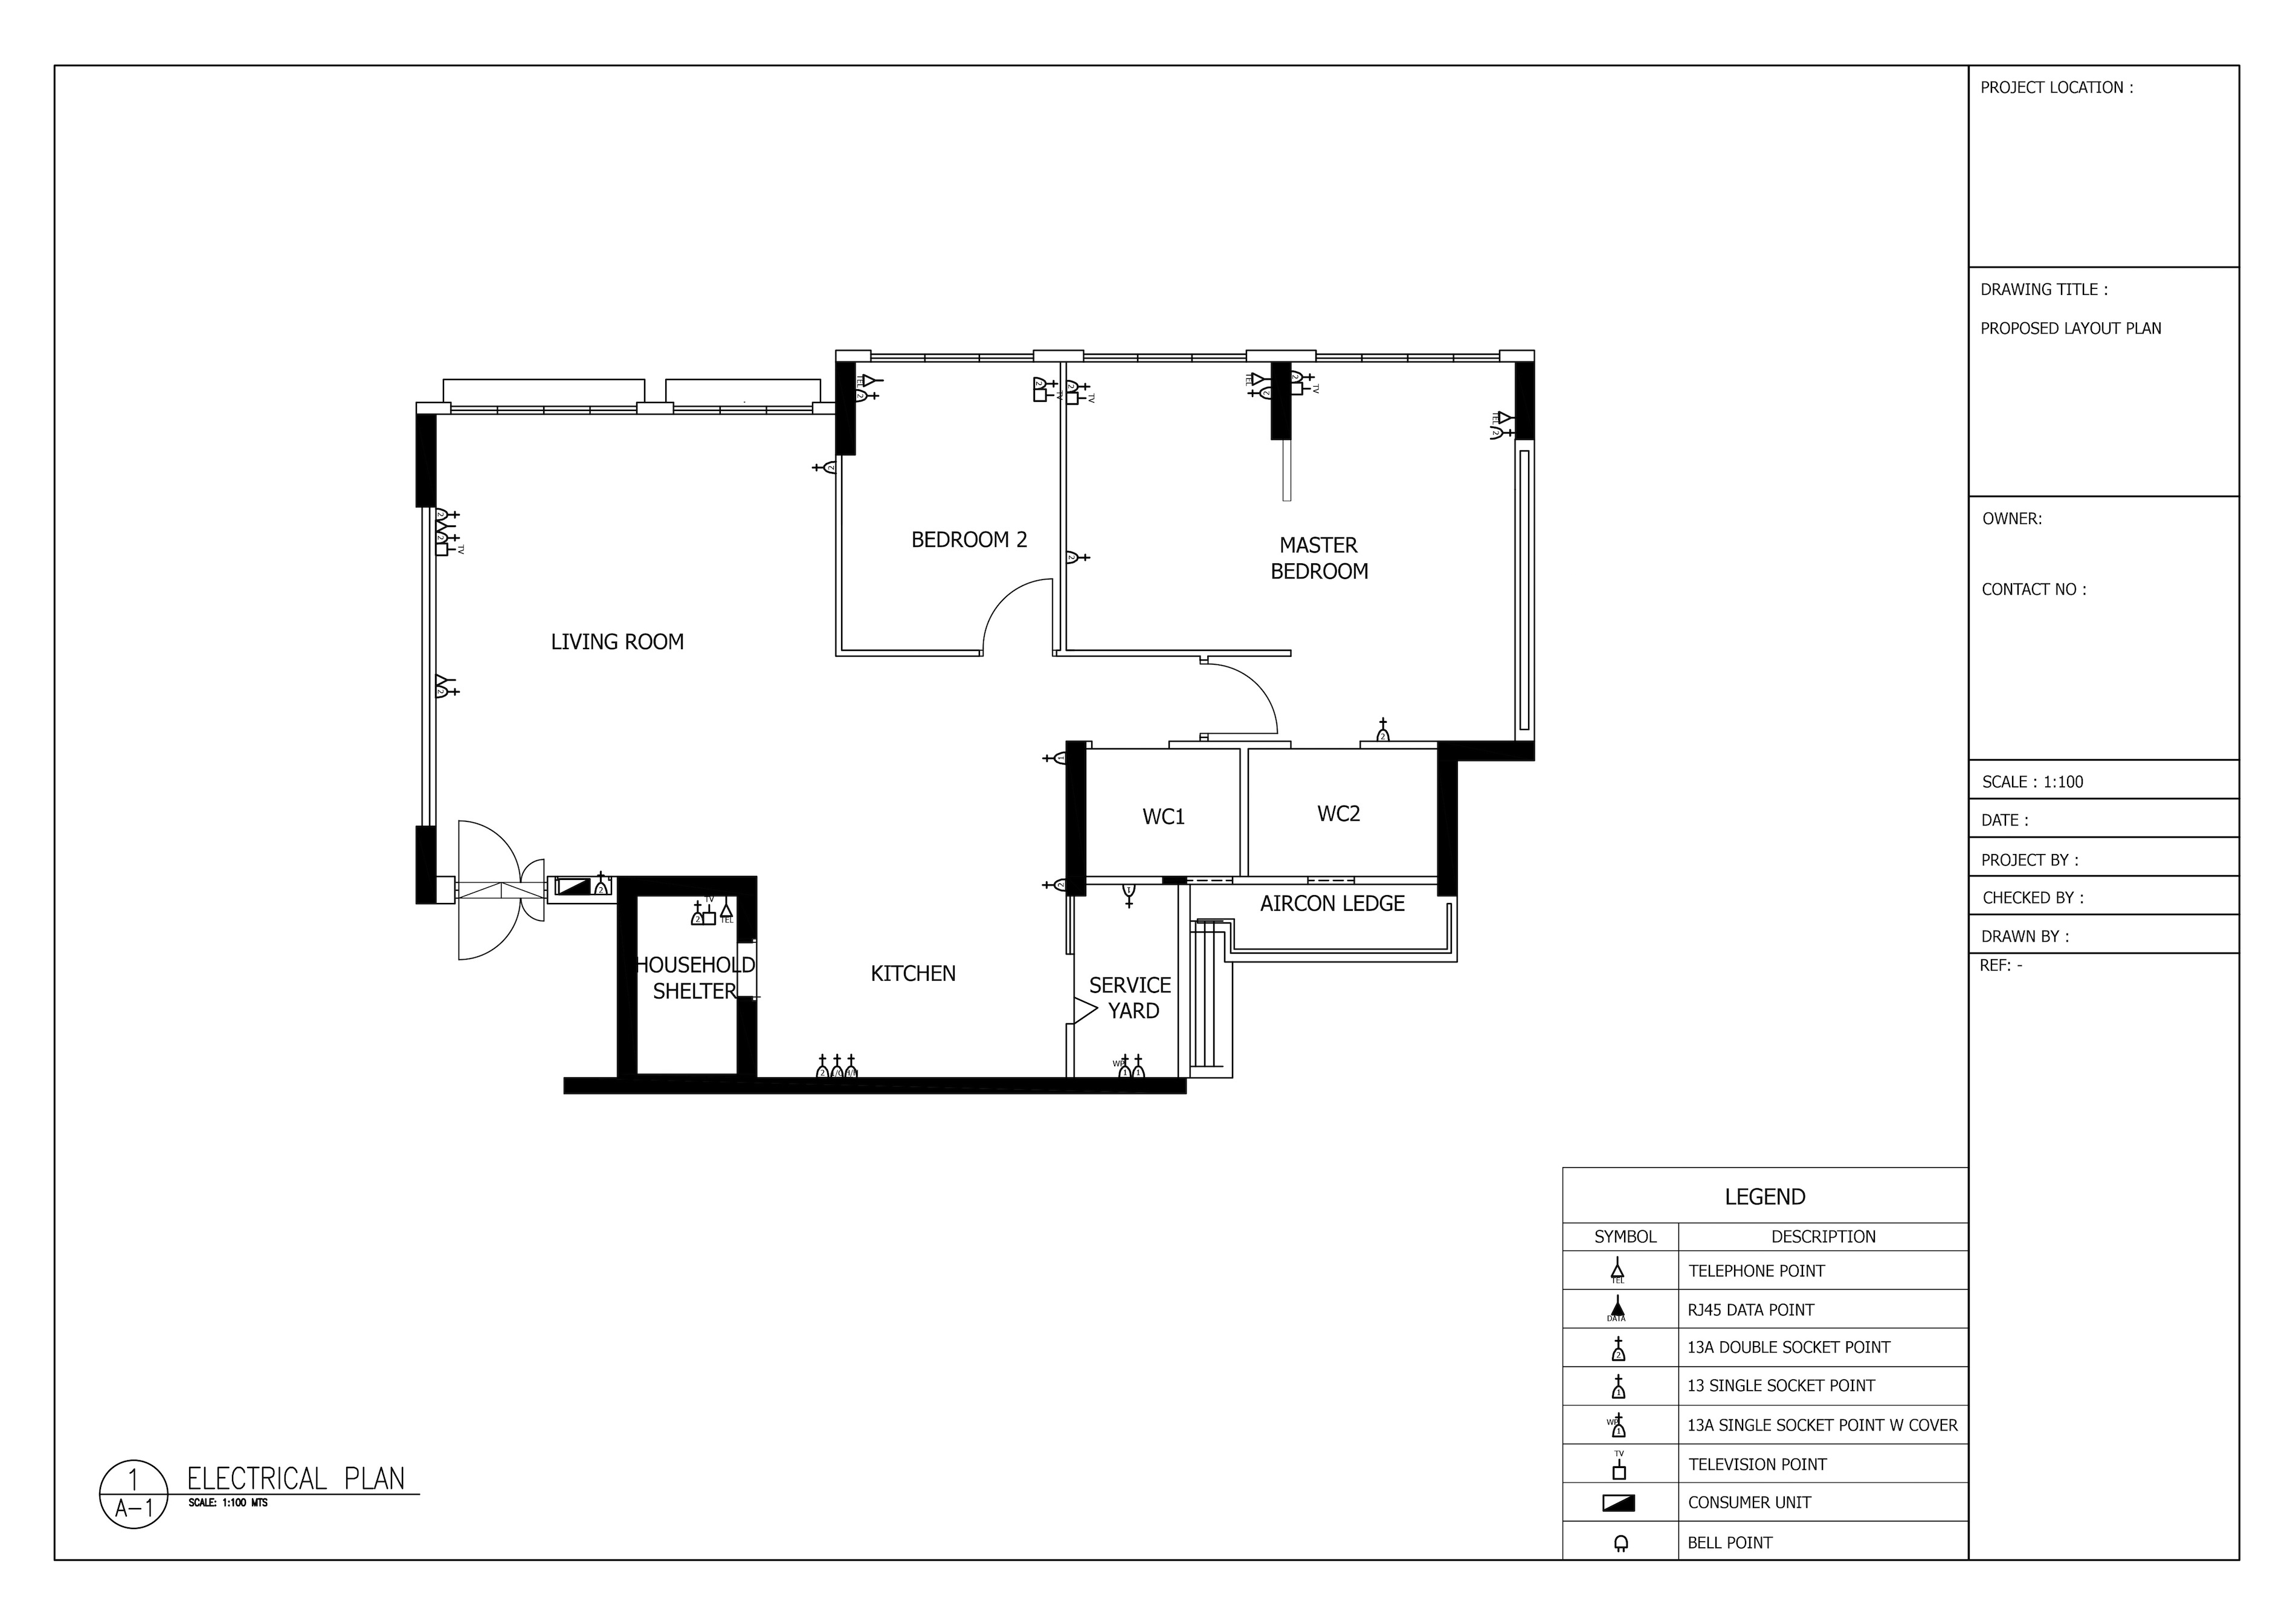 How to Plan Lighting and Electrical Works for your House